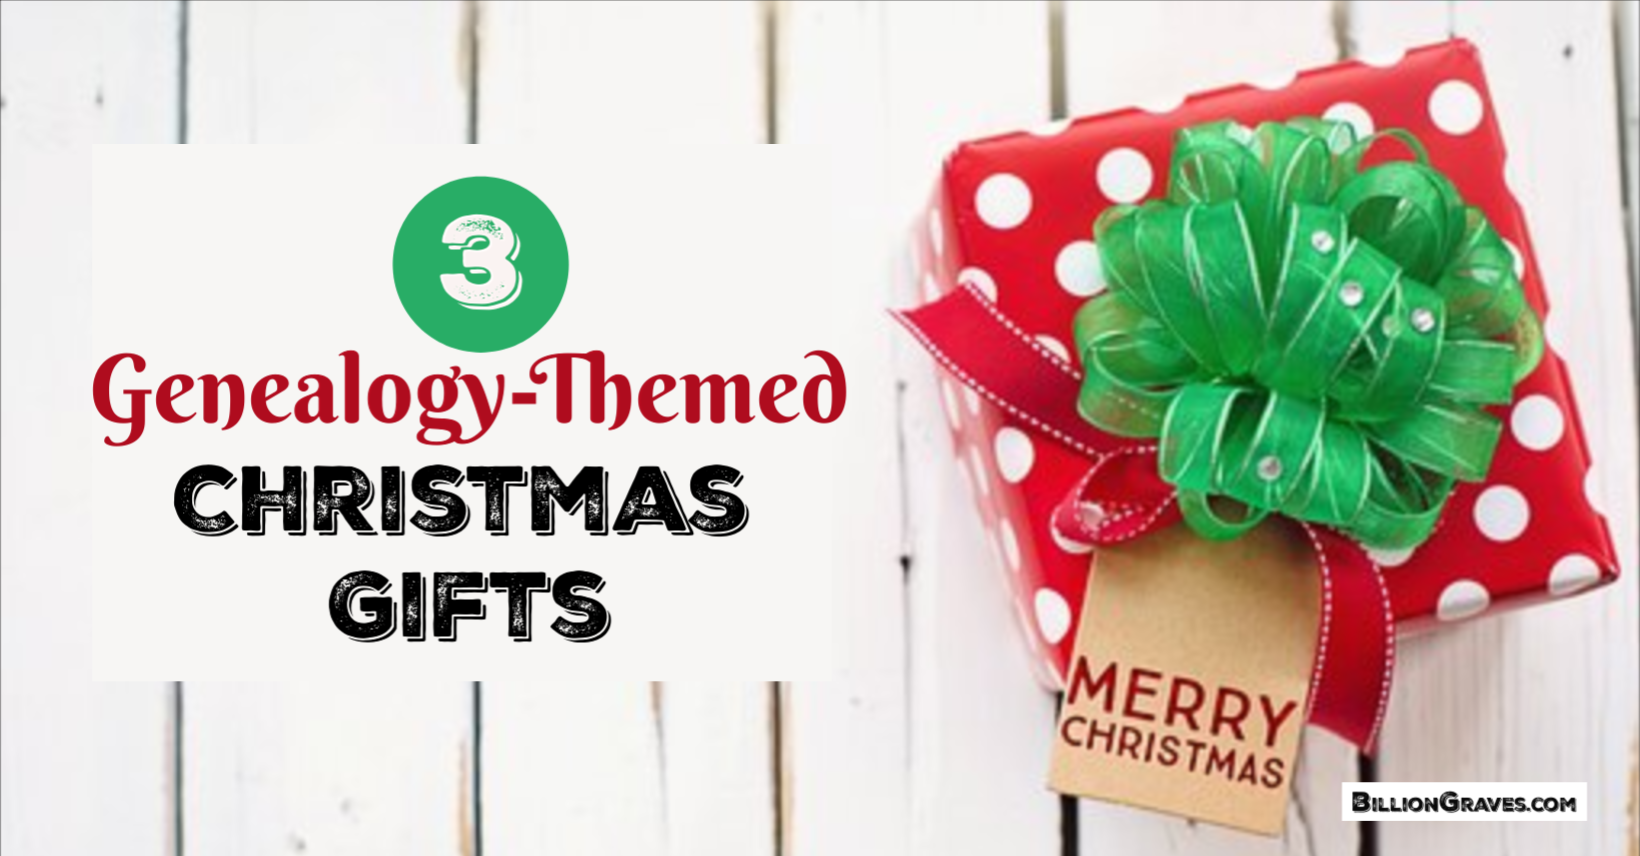 3 Genealogy-Themed Christmas Gifts